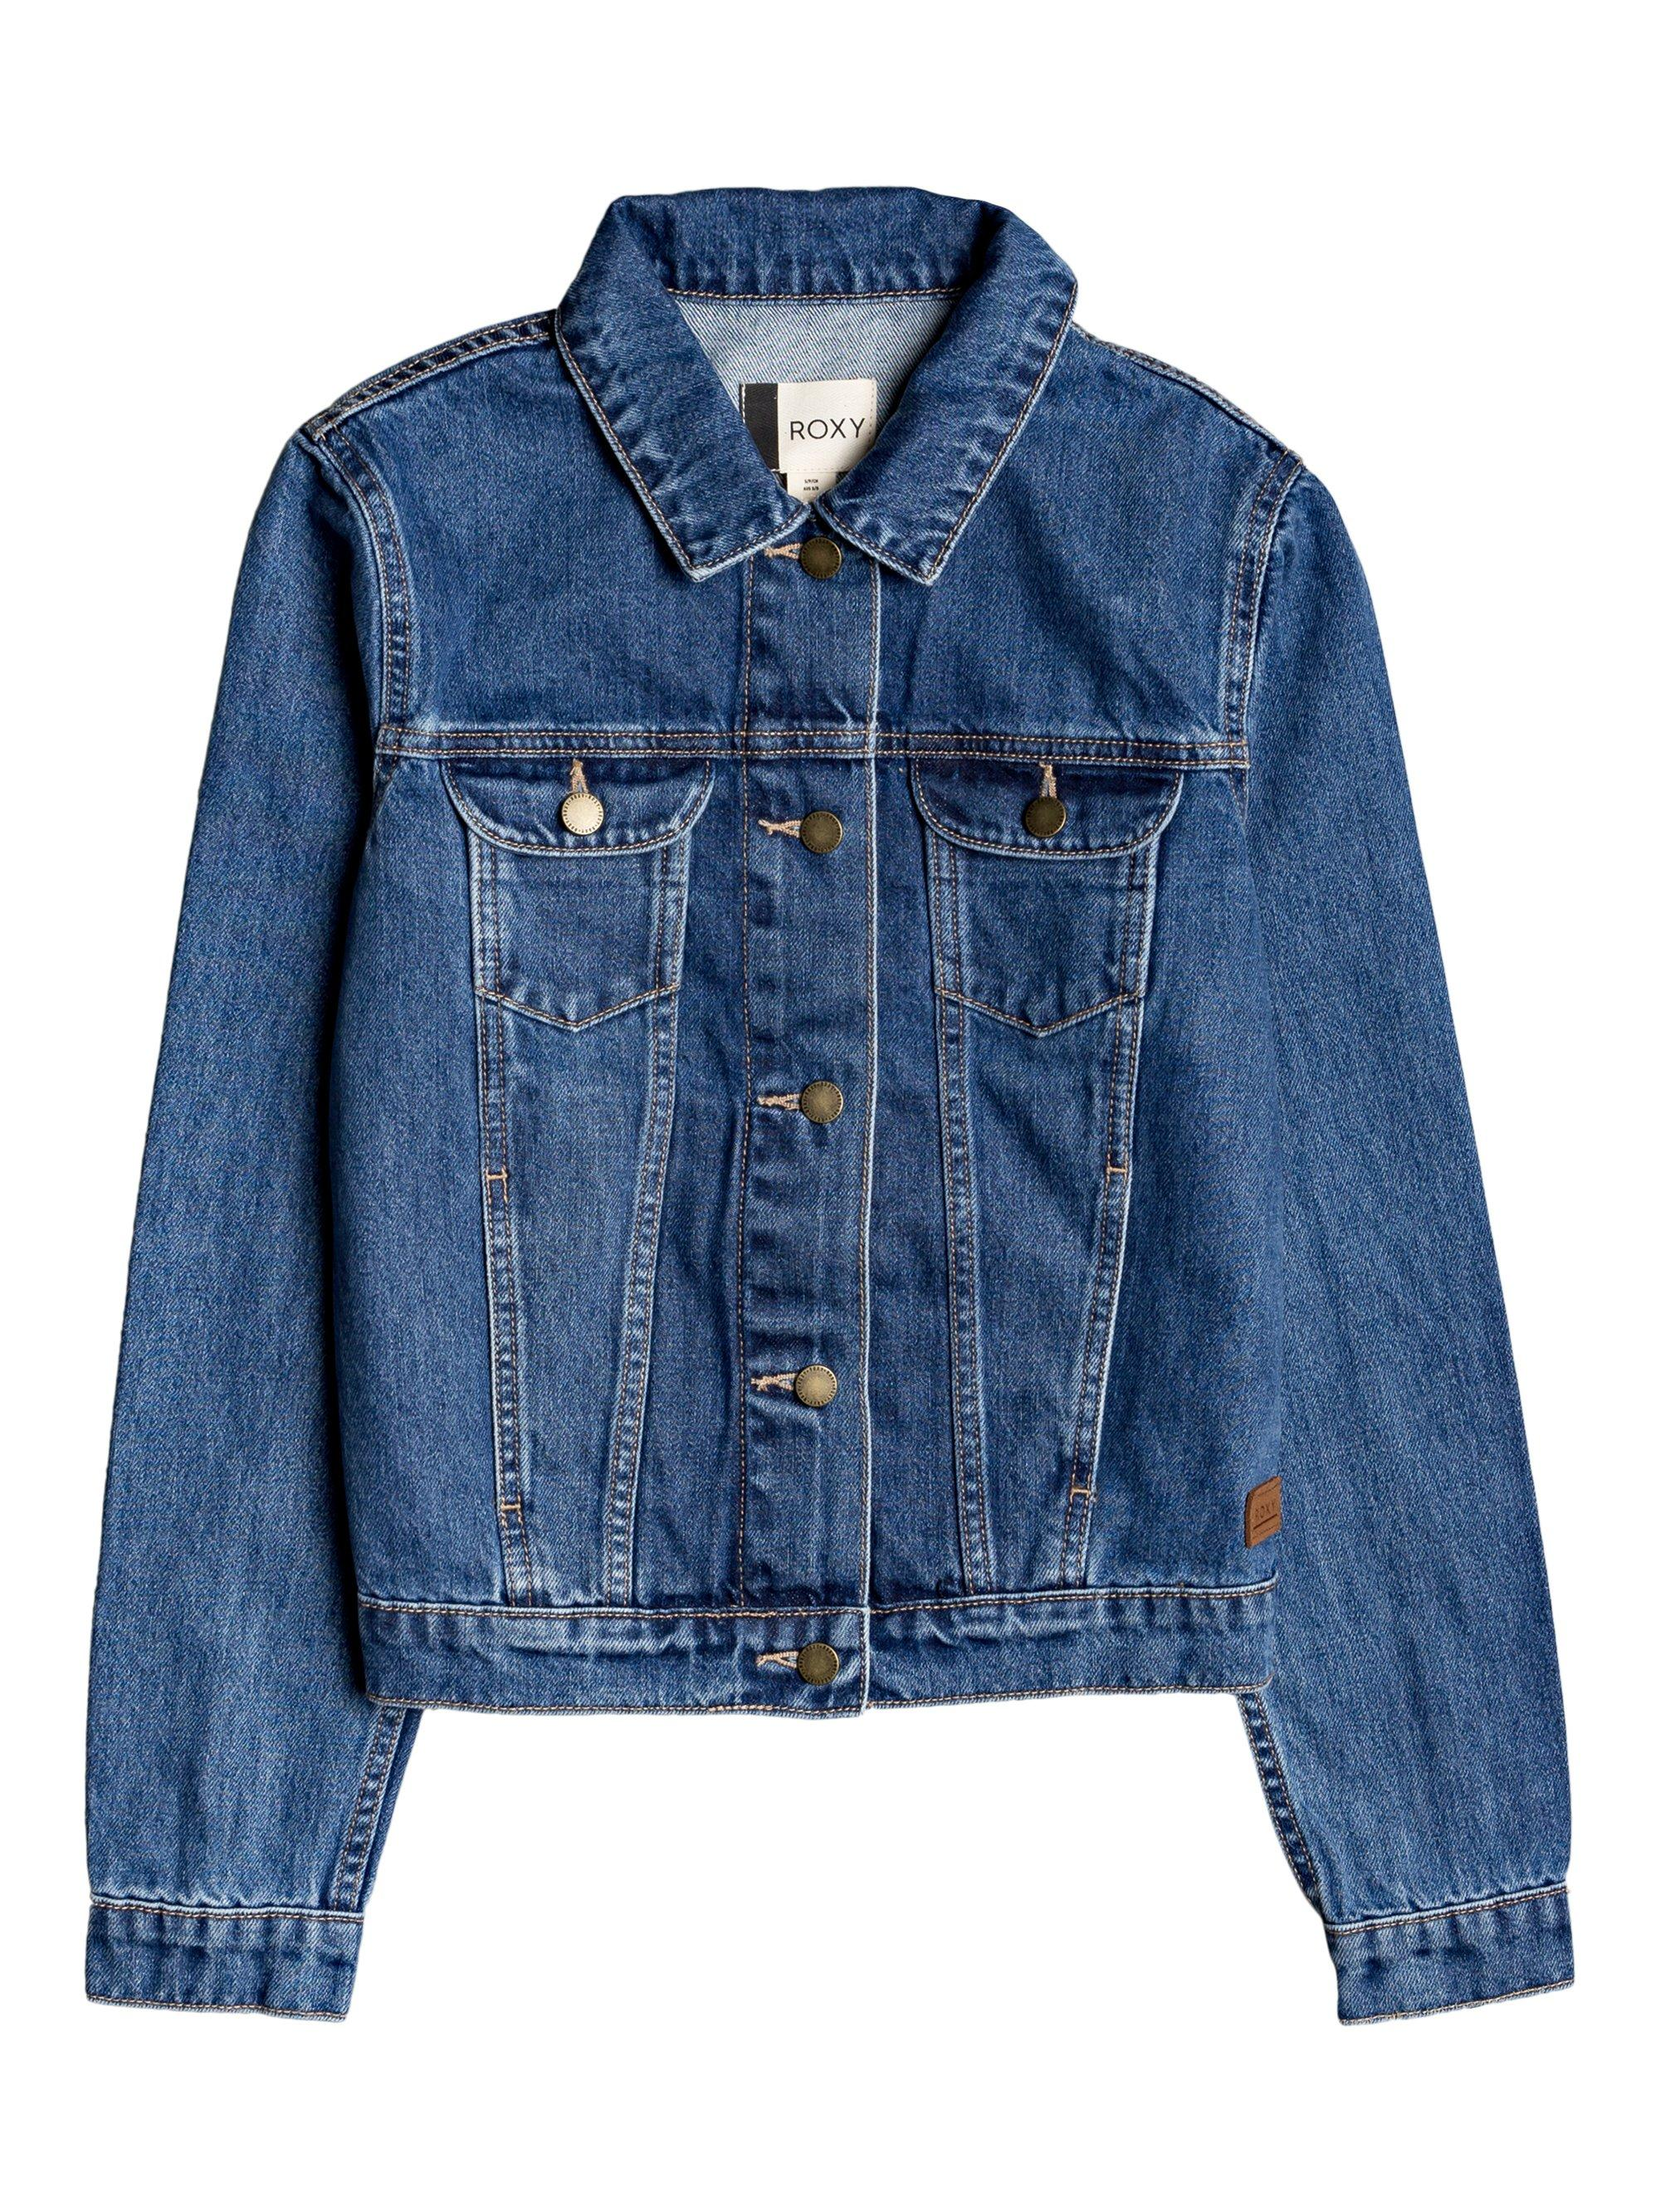 Roxy Tiger Eyes Denim Jacket - 88 Gear